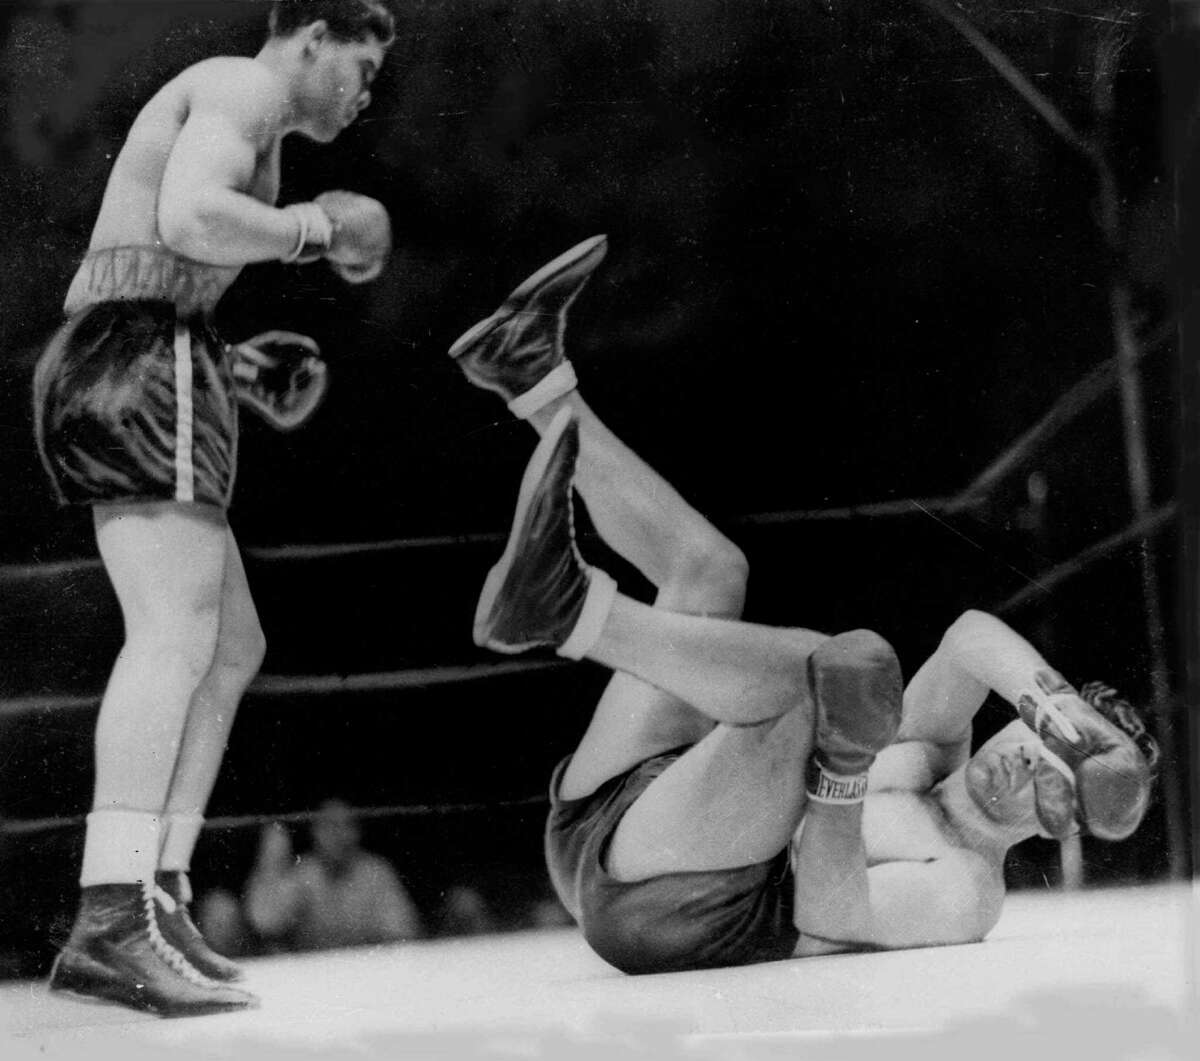 """In perhaps his greatest victory, Joe Louis clubs Max Schmeling into submission to defend the heavyweight title on June 22, 1938. A reader claims it was Louis, not Muhammad Ali, who deserves to be called """"the greatest."""""""